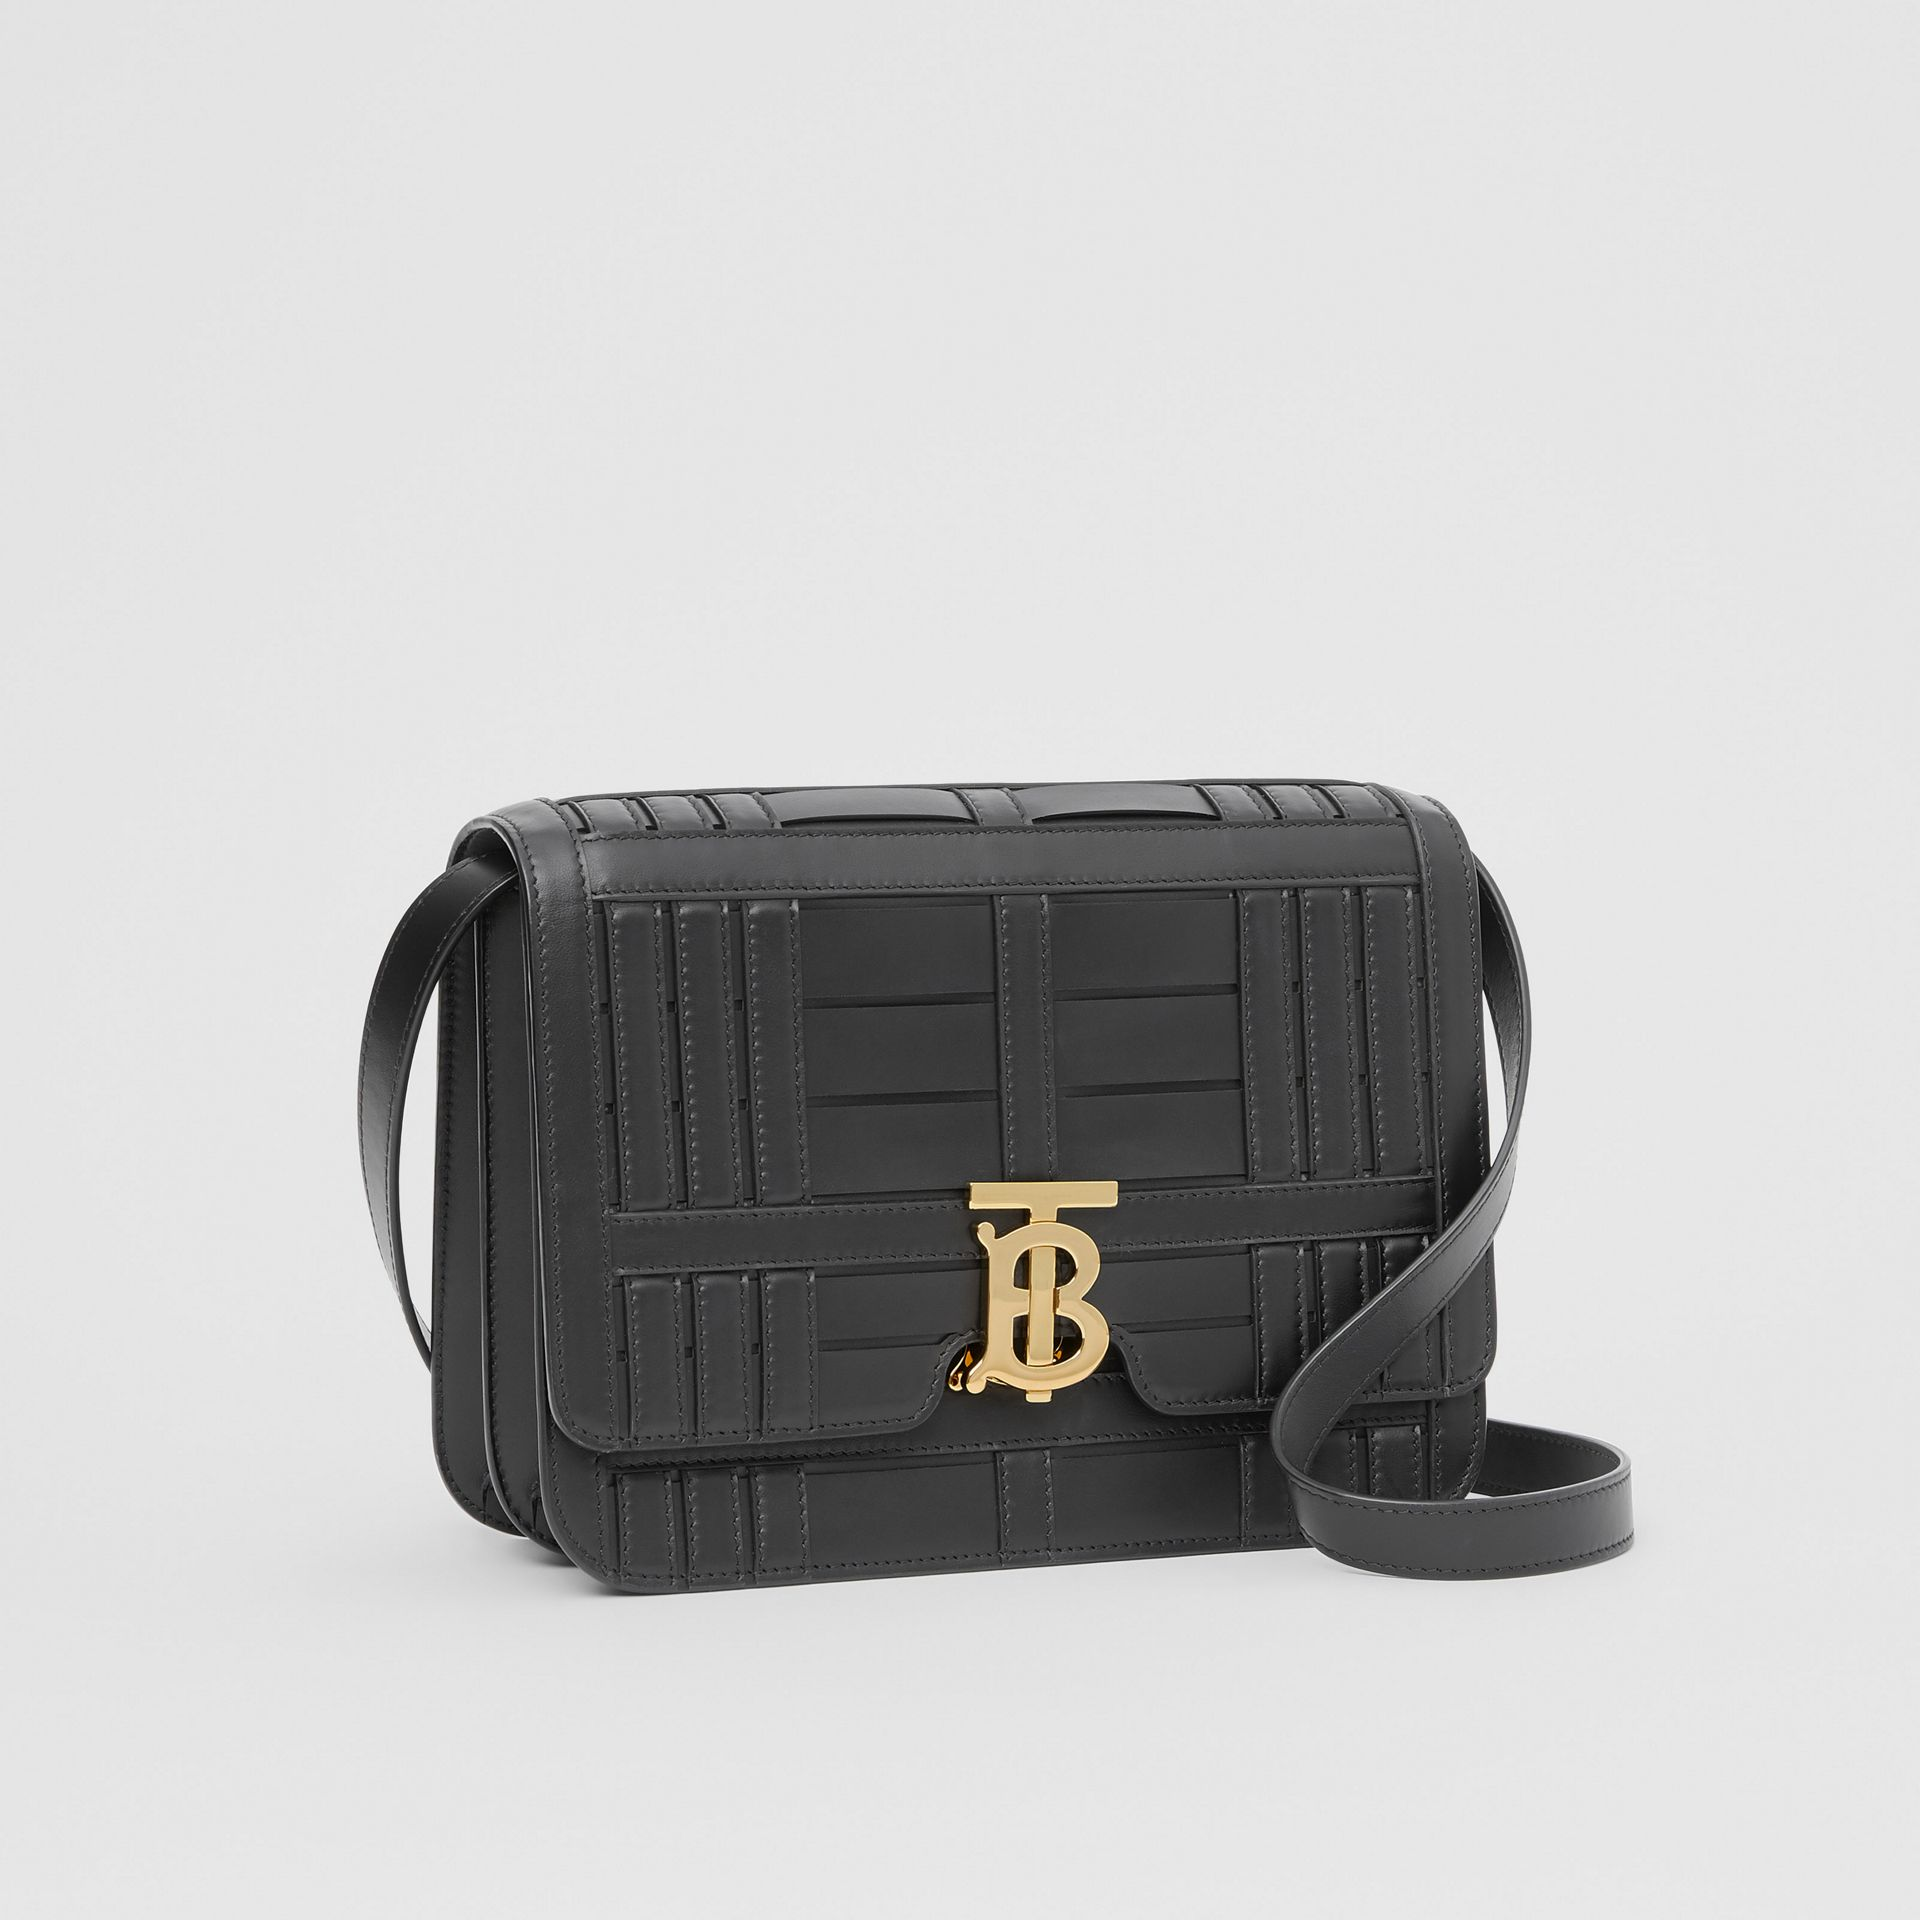 Medium Woven Leather TB Bag in Black - Women | Burberry - gallery image 6